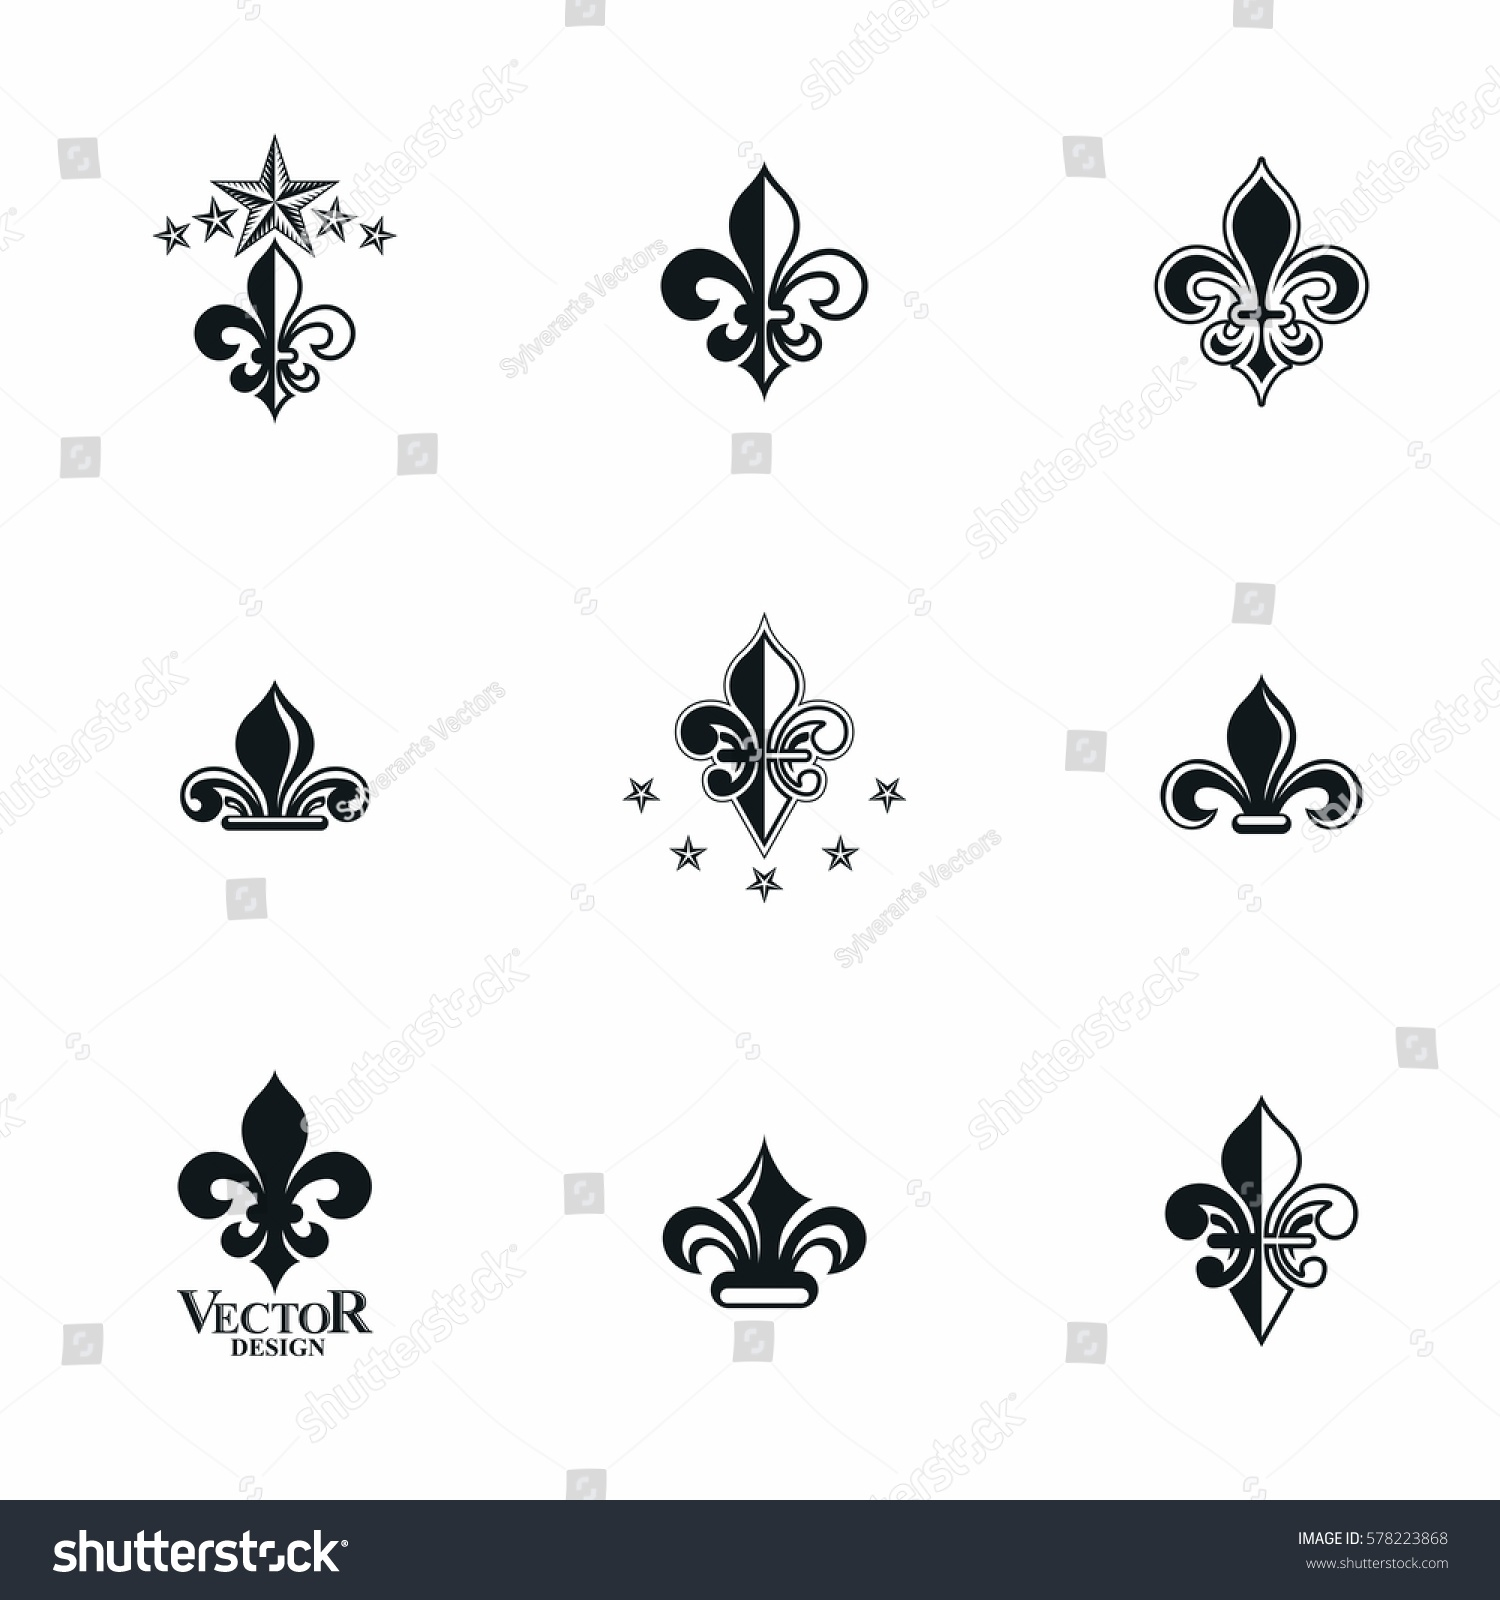 Royal symbols lily flowers emblems set stock vector 578223868 royal symbols lily flowers emblems set heraldic vector design elements collection retro style label buycottarizona